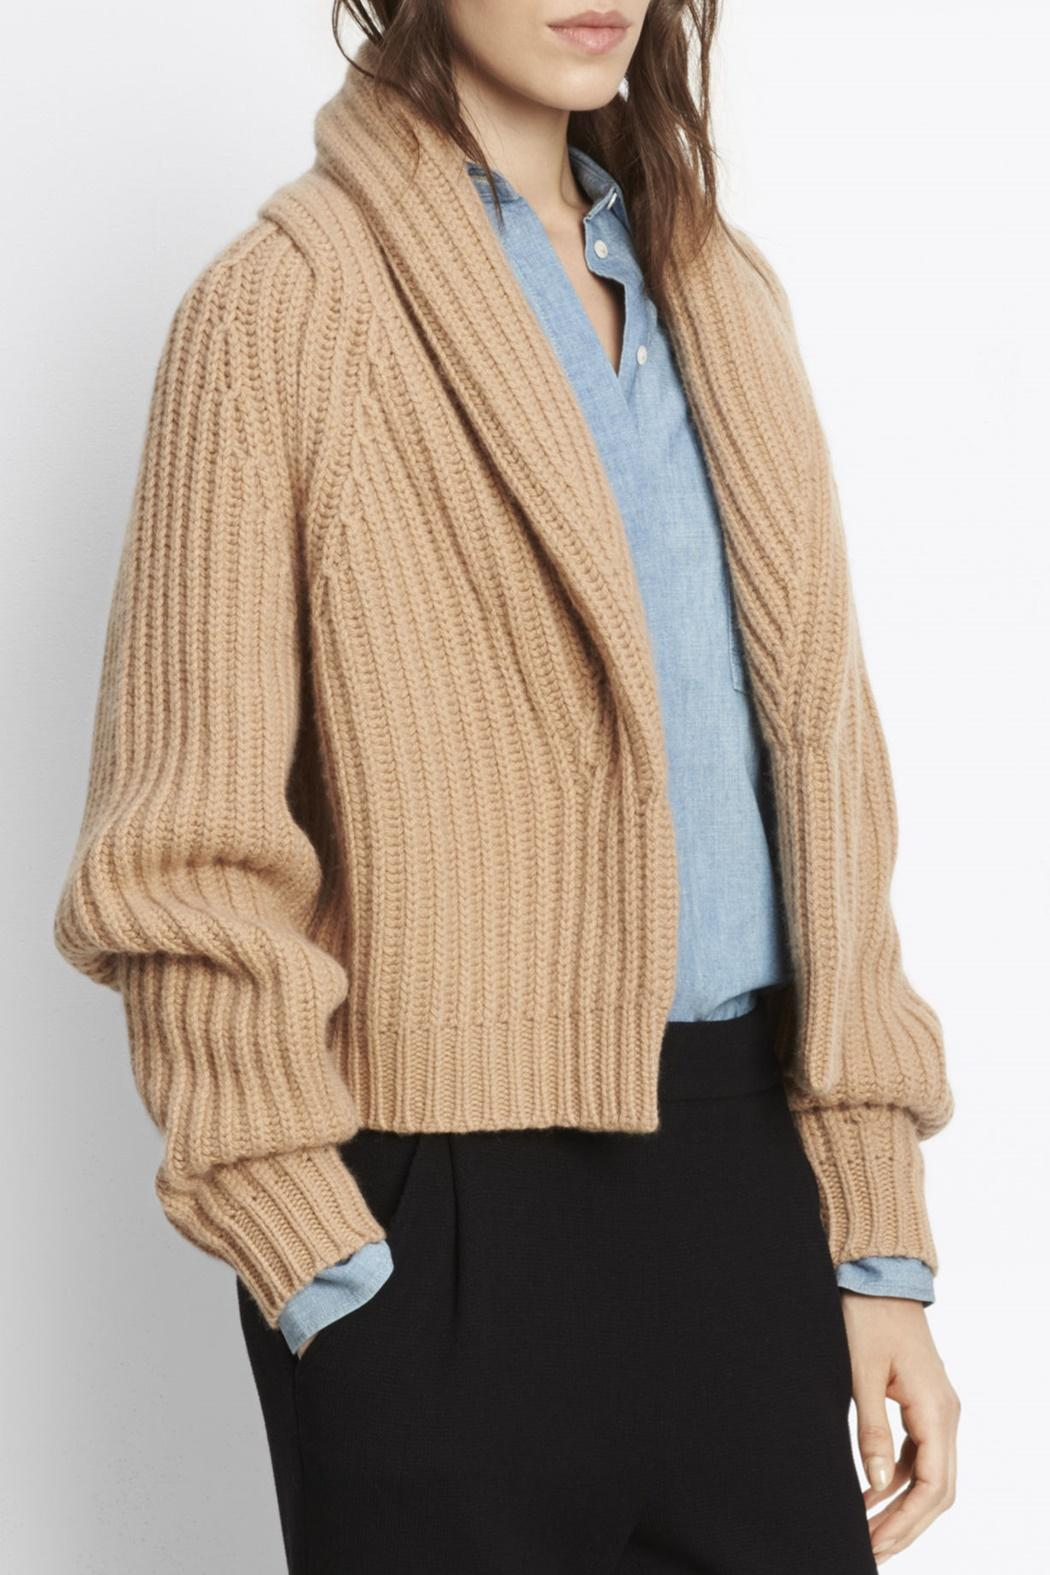 Purchase Cheap Price Huge Surprise Sale Online cropped cardigan - Blue Vince Good Selling Cheap Price KR5FeClk0